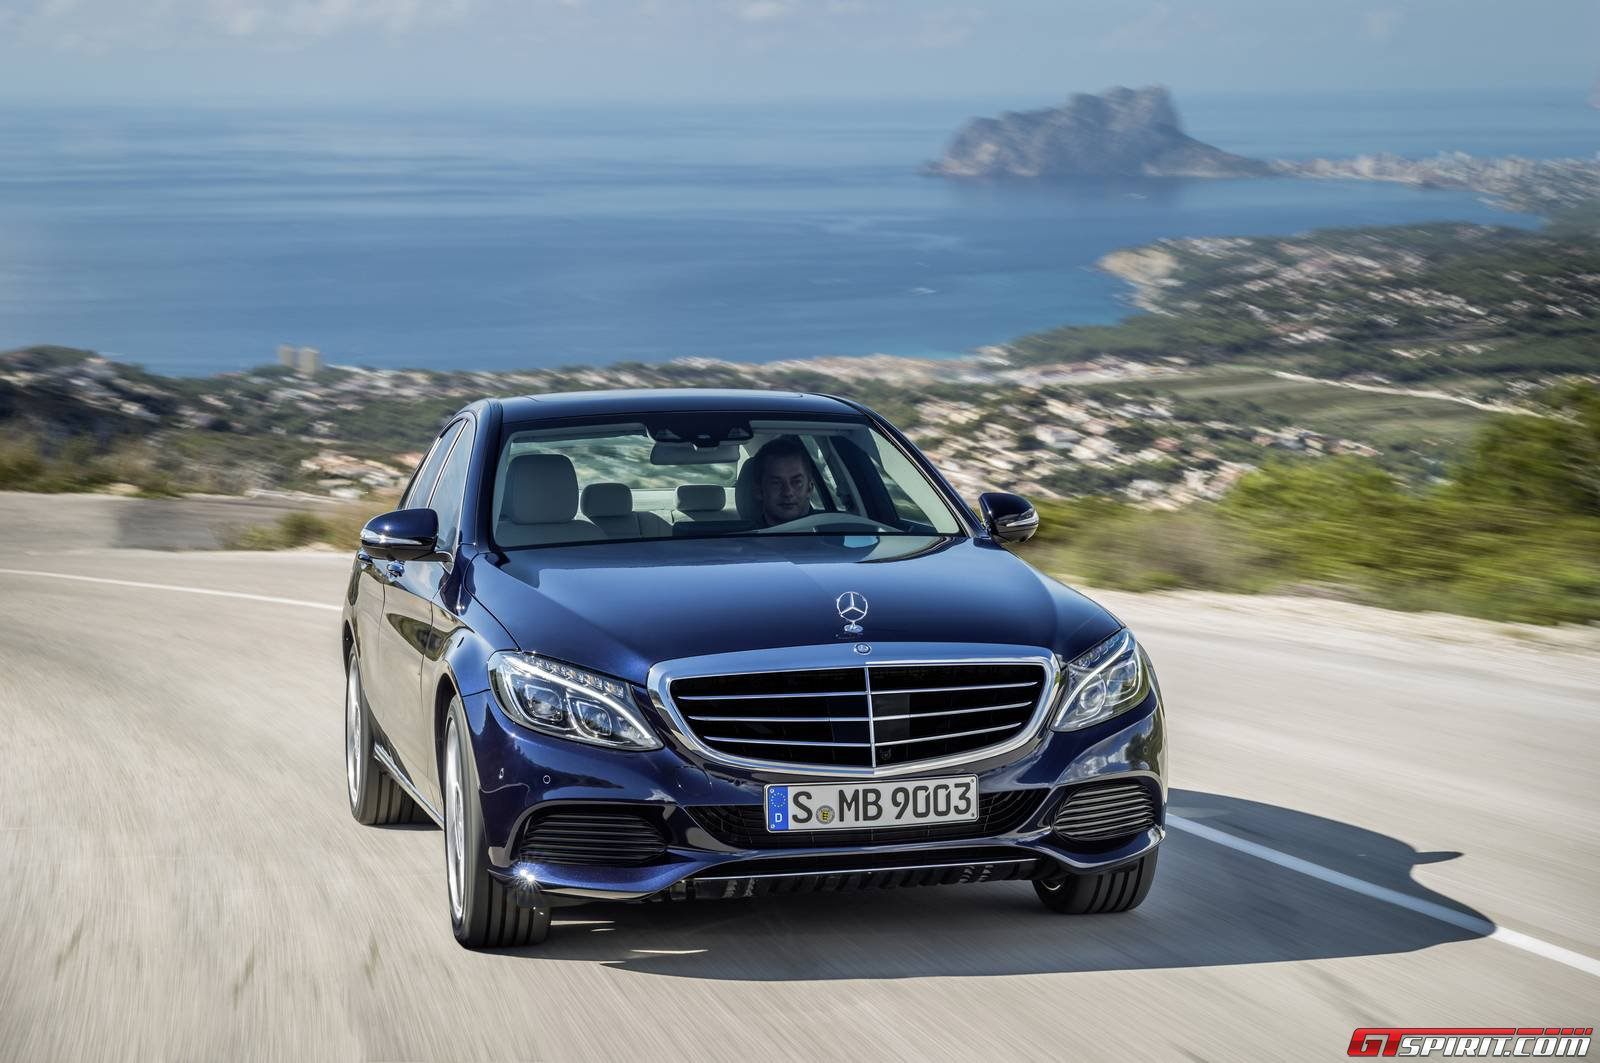 Lovely 2015 Mercedes Benz C Class U.K. Pricing Revealed